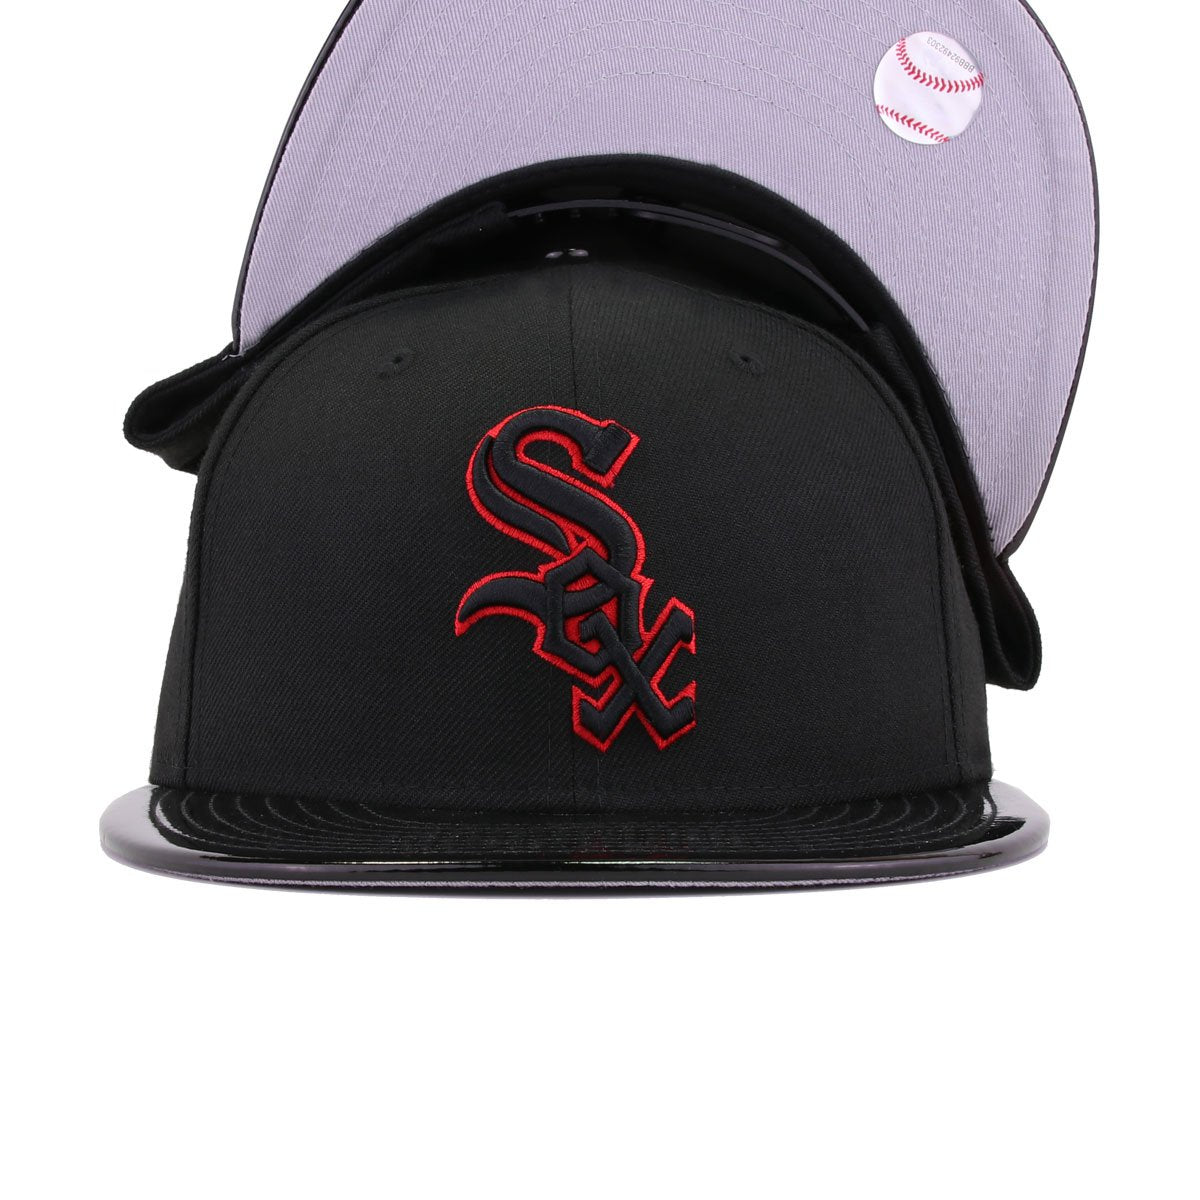 Chicago White Sox Black Patent Leather New Era 9Fifty Snapback